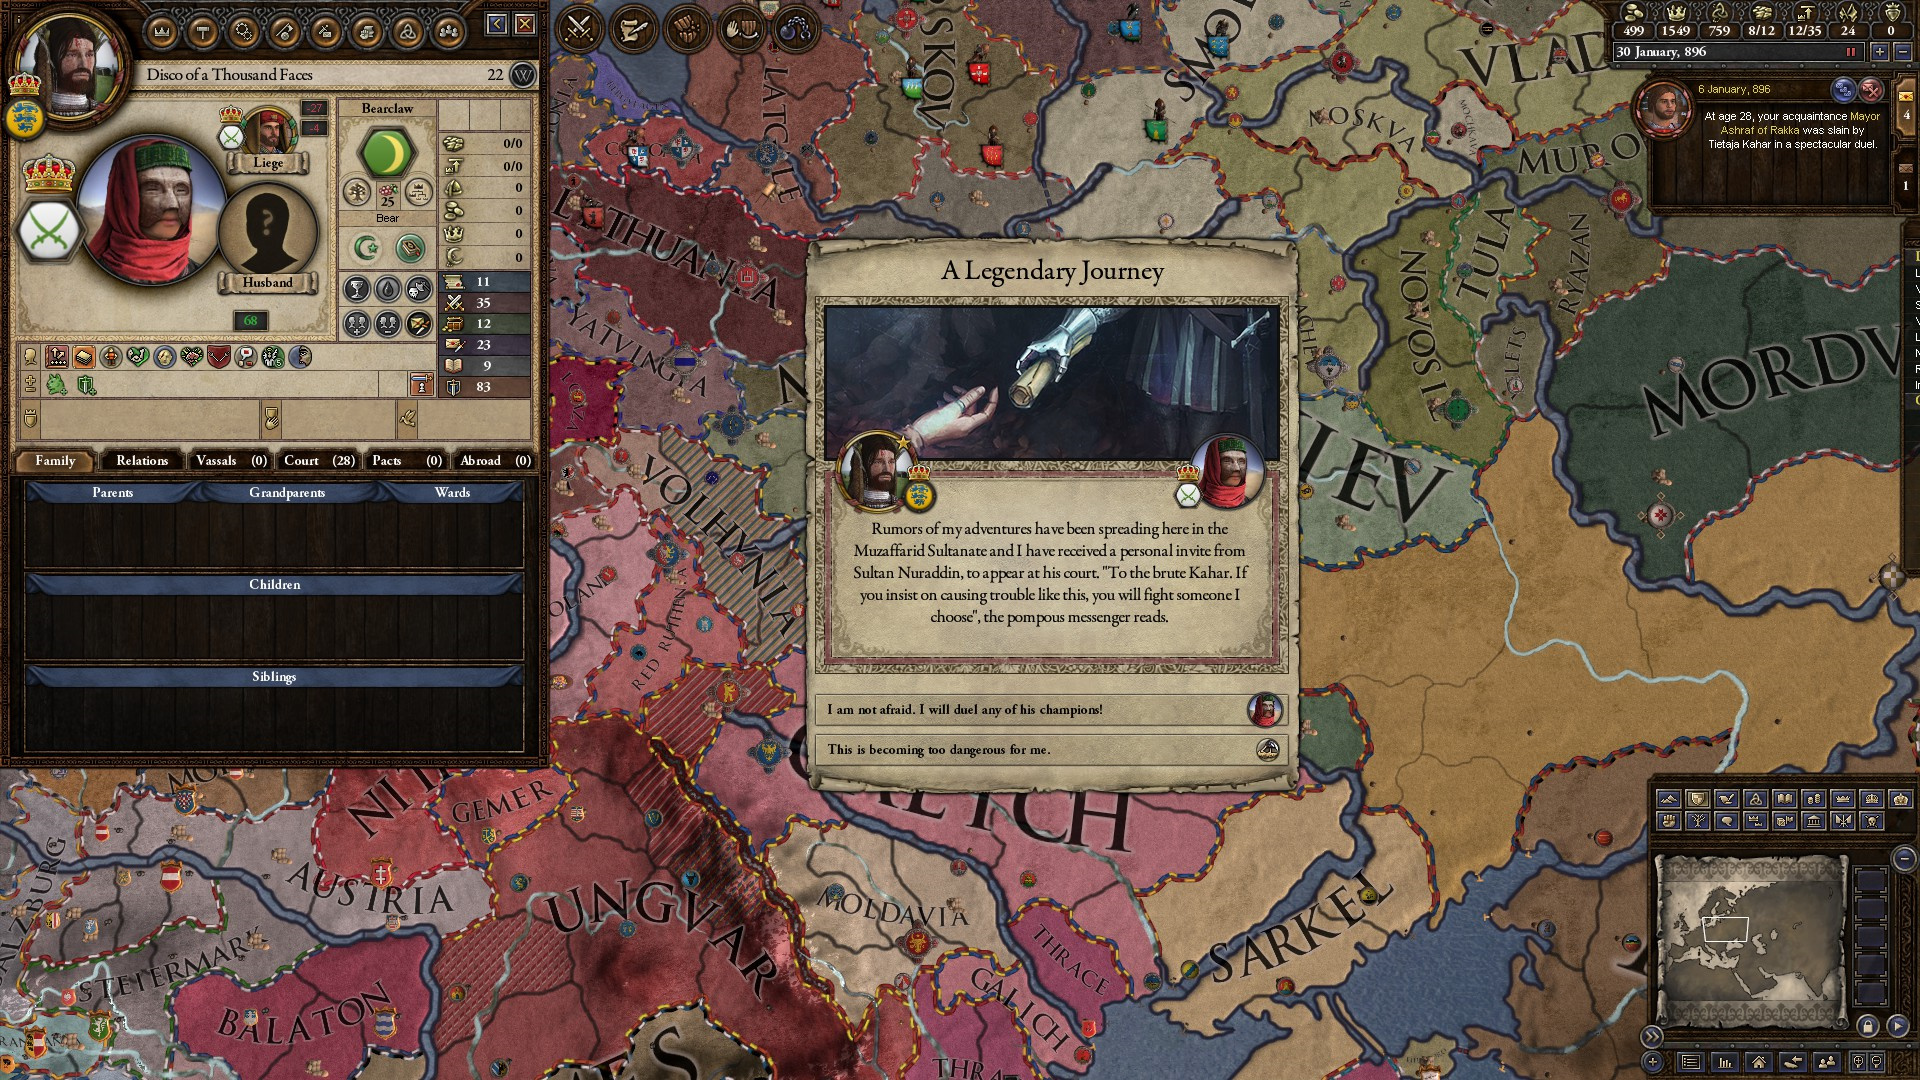 Are you fan enough for Crusader Kings 2? - Games - Quarter To Three